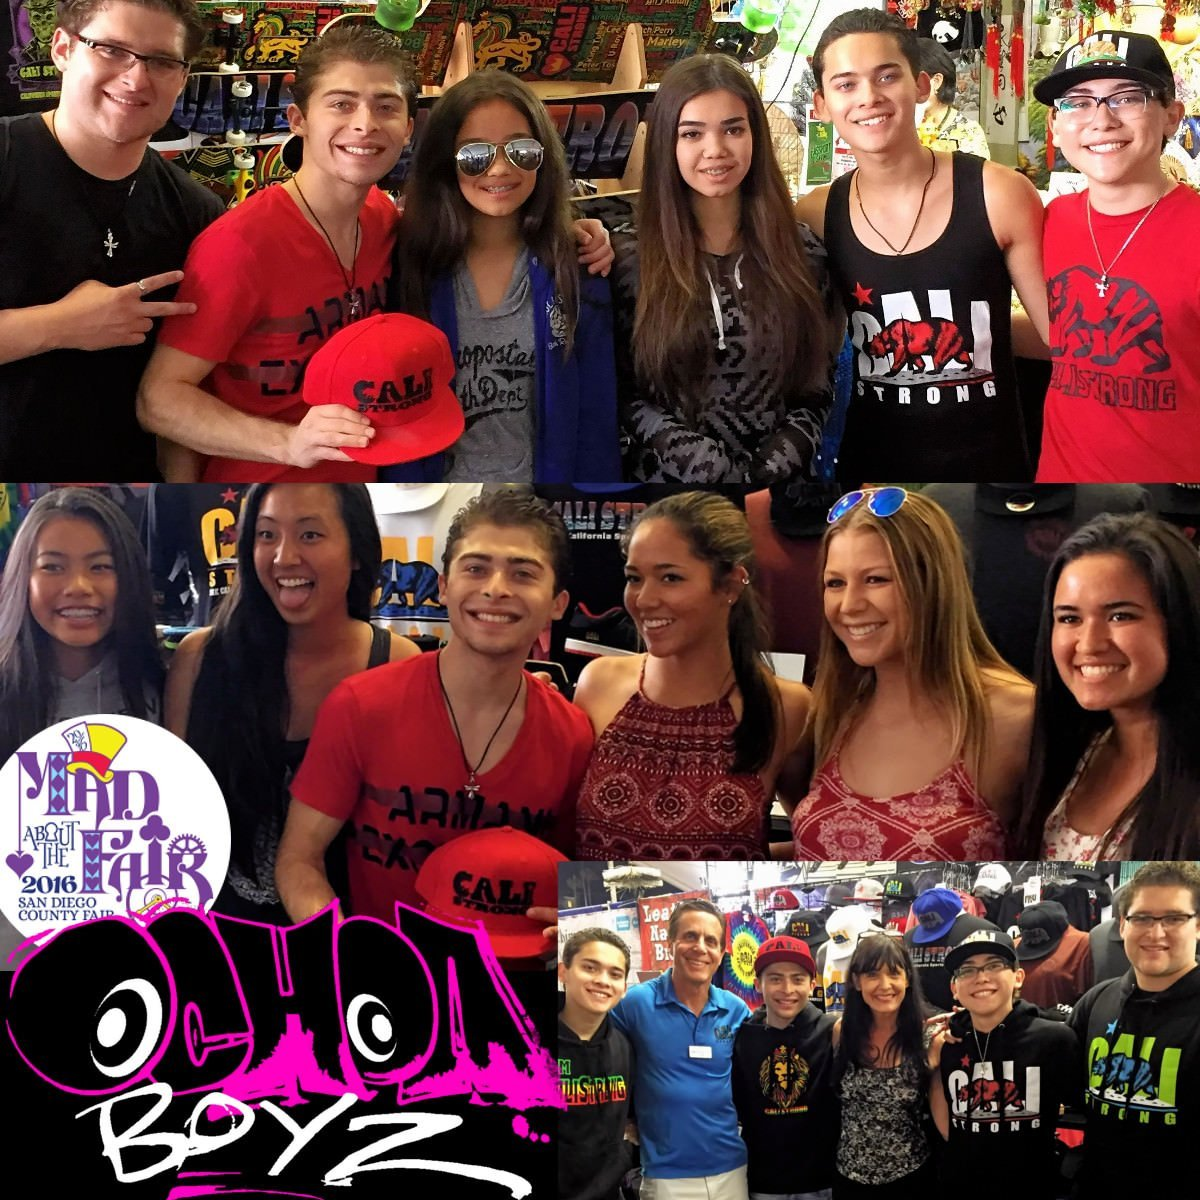 Ochoa Boyz fans stormed CALI Strong during the boyz visit at the San Diego County Fair this week! @ryanochoa, @robertochoa125, @rickochoa21 & @raymondochoa12 were lit!